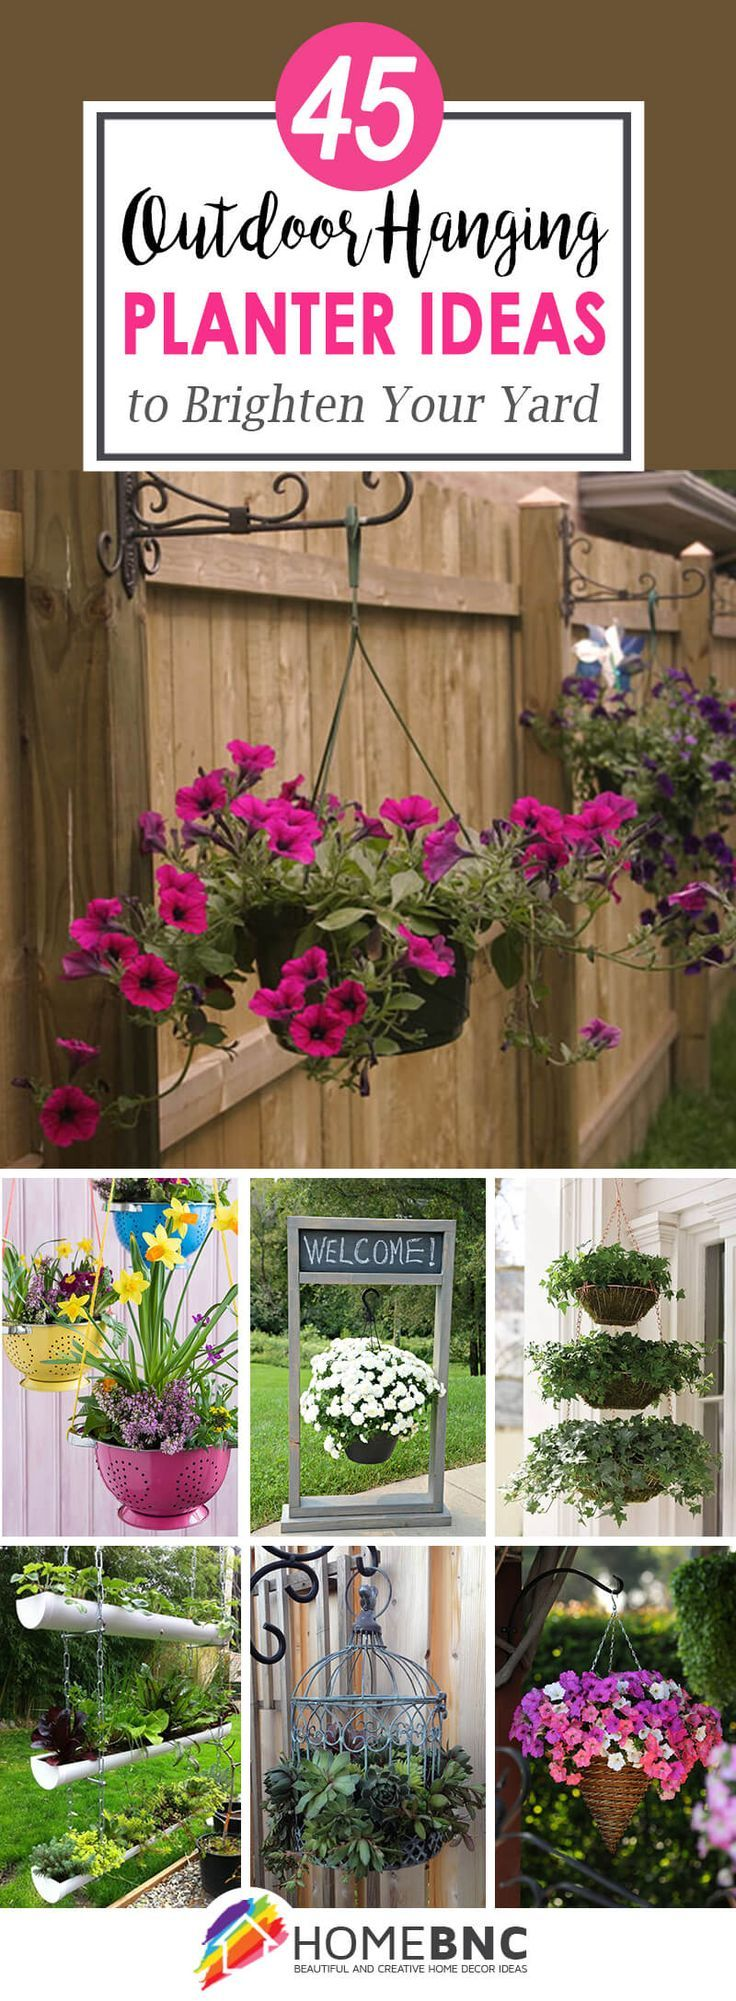 29 Best Music Images On Pinterest Mobile Phones Mobiles And Bugzapper1 Circuit Schematic Diagram 45 Charming Outdoor Hanging Planter Ideas To Brighten Your Yard